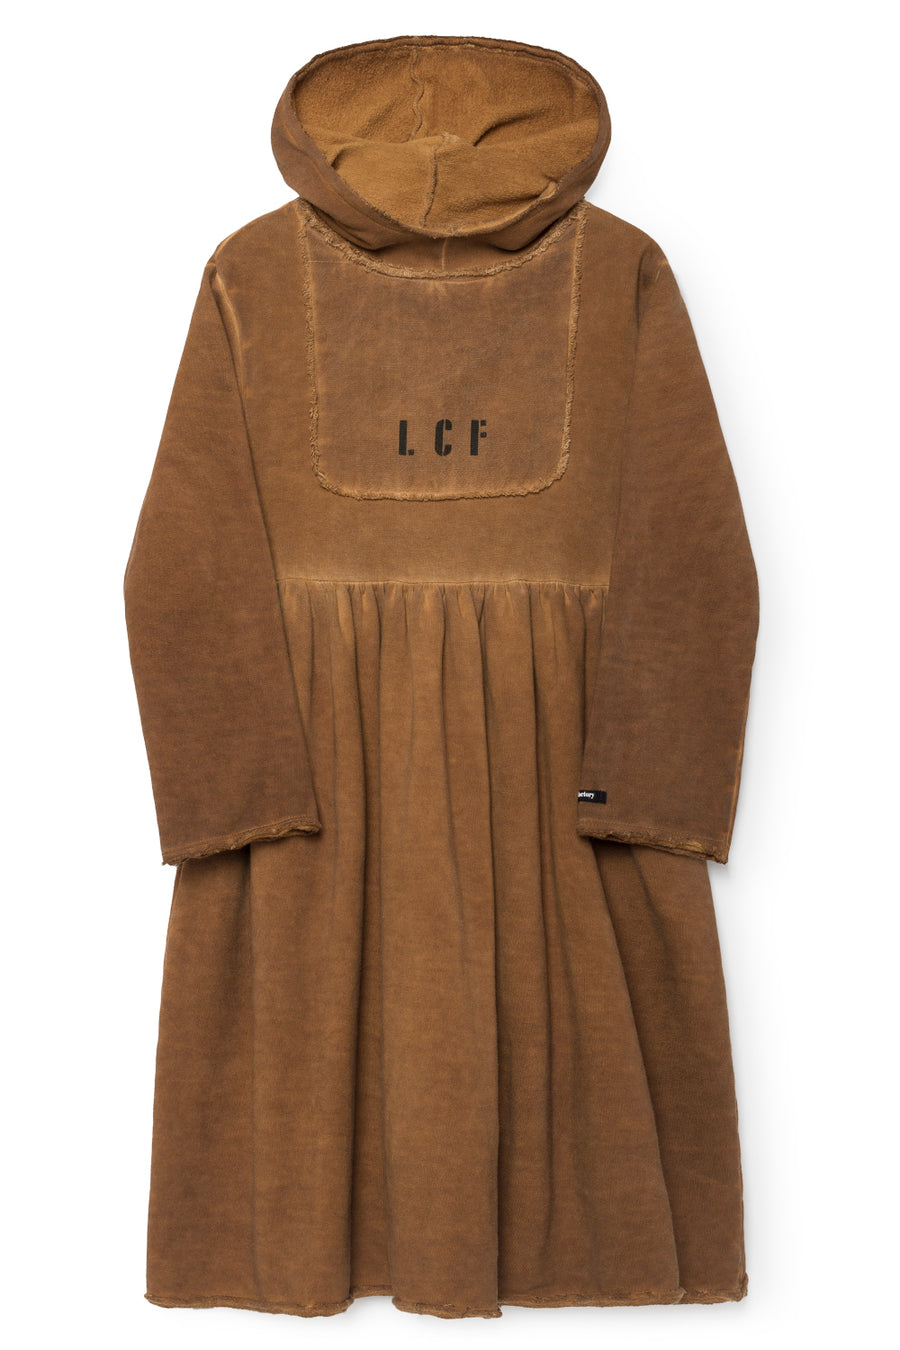 Rusty Hooded Stretchy Dress by Little Creative Factory